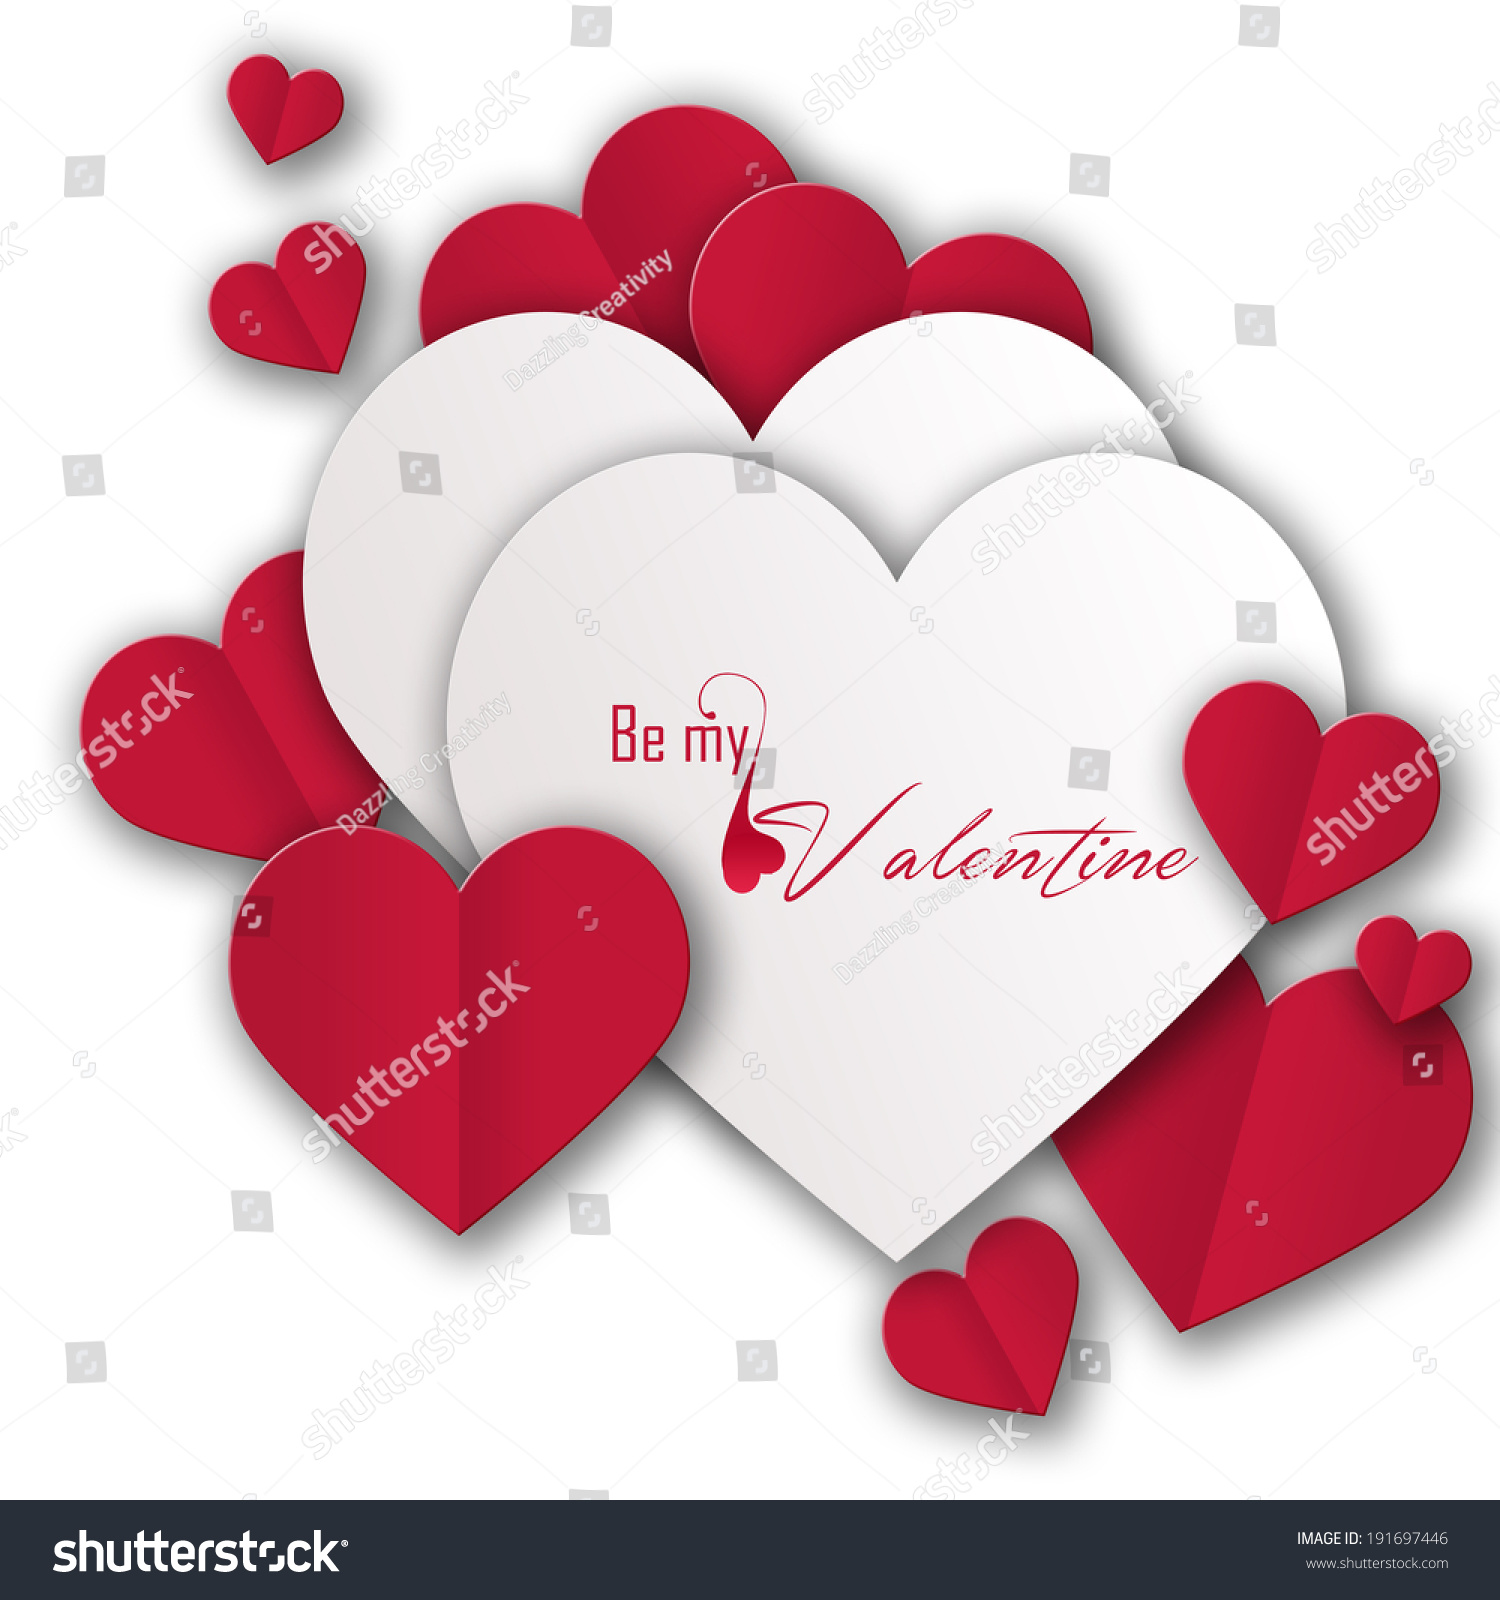 beautiful love hearts valentines day background stock photo (edit